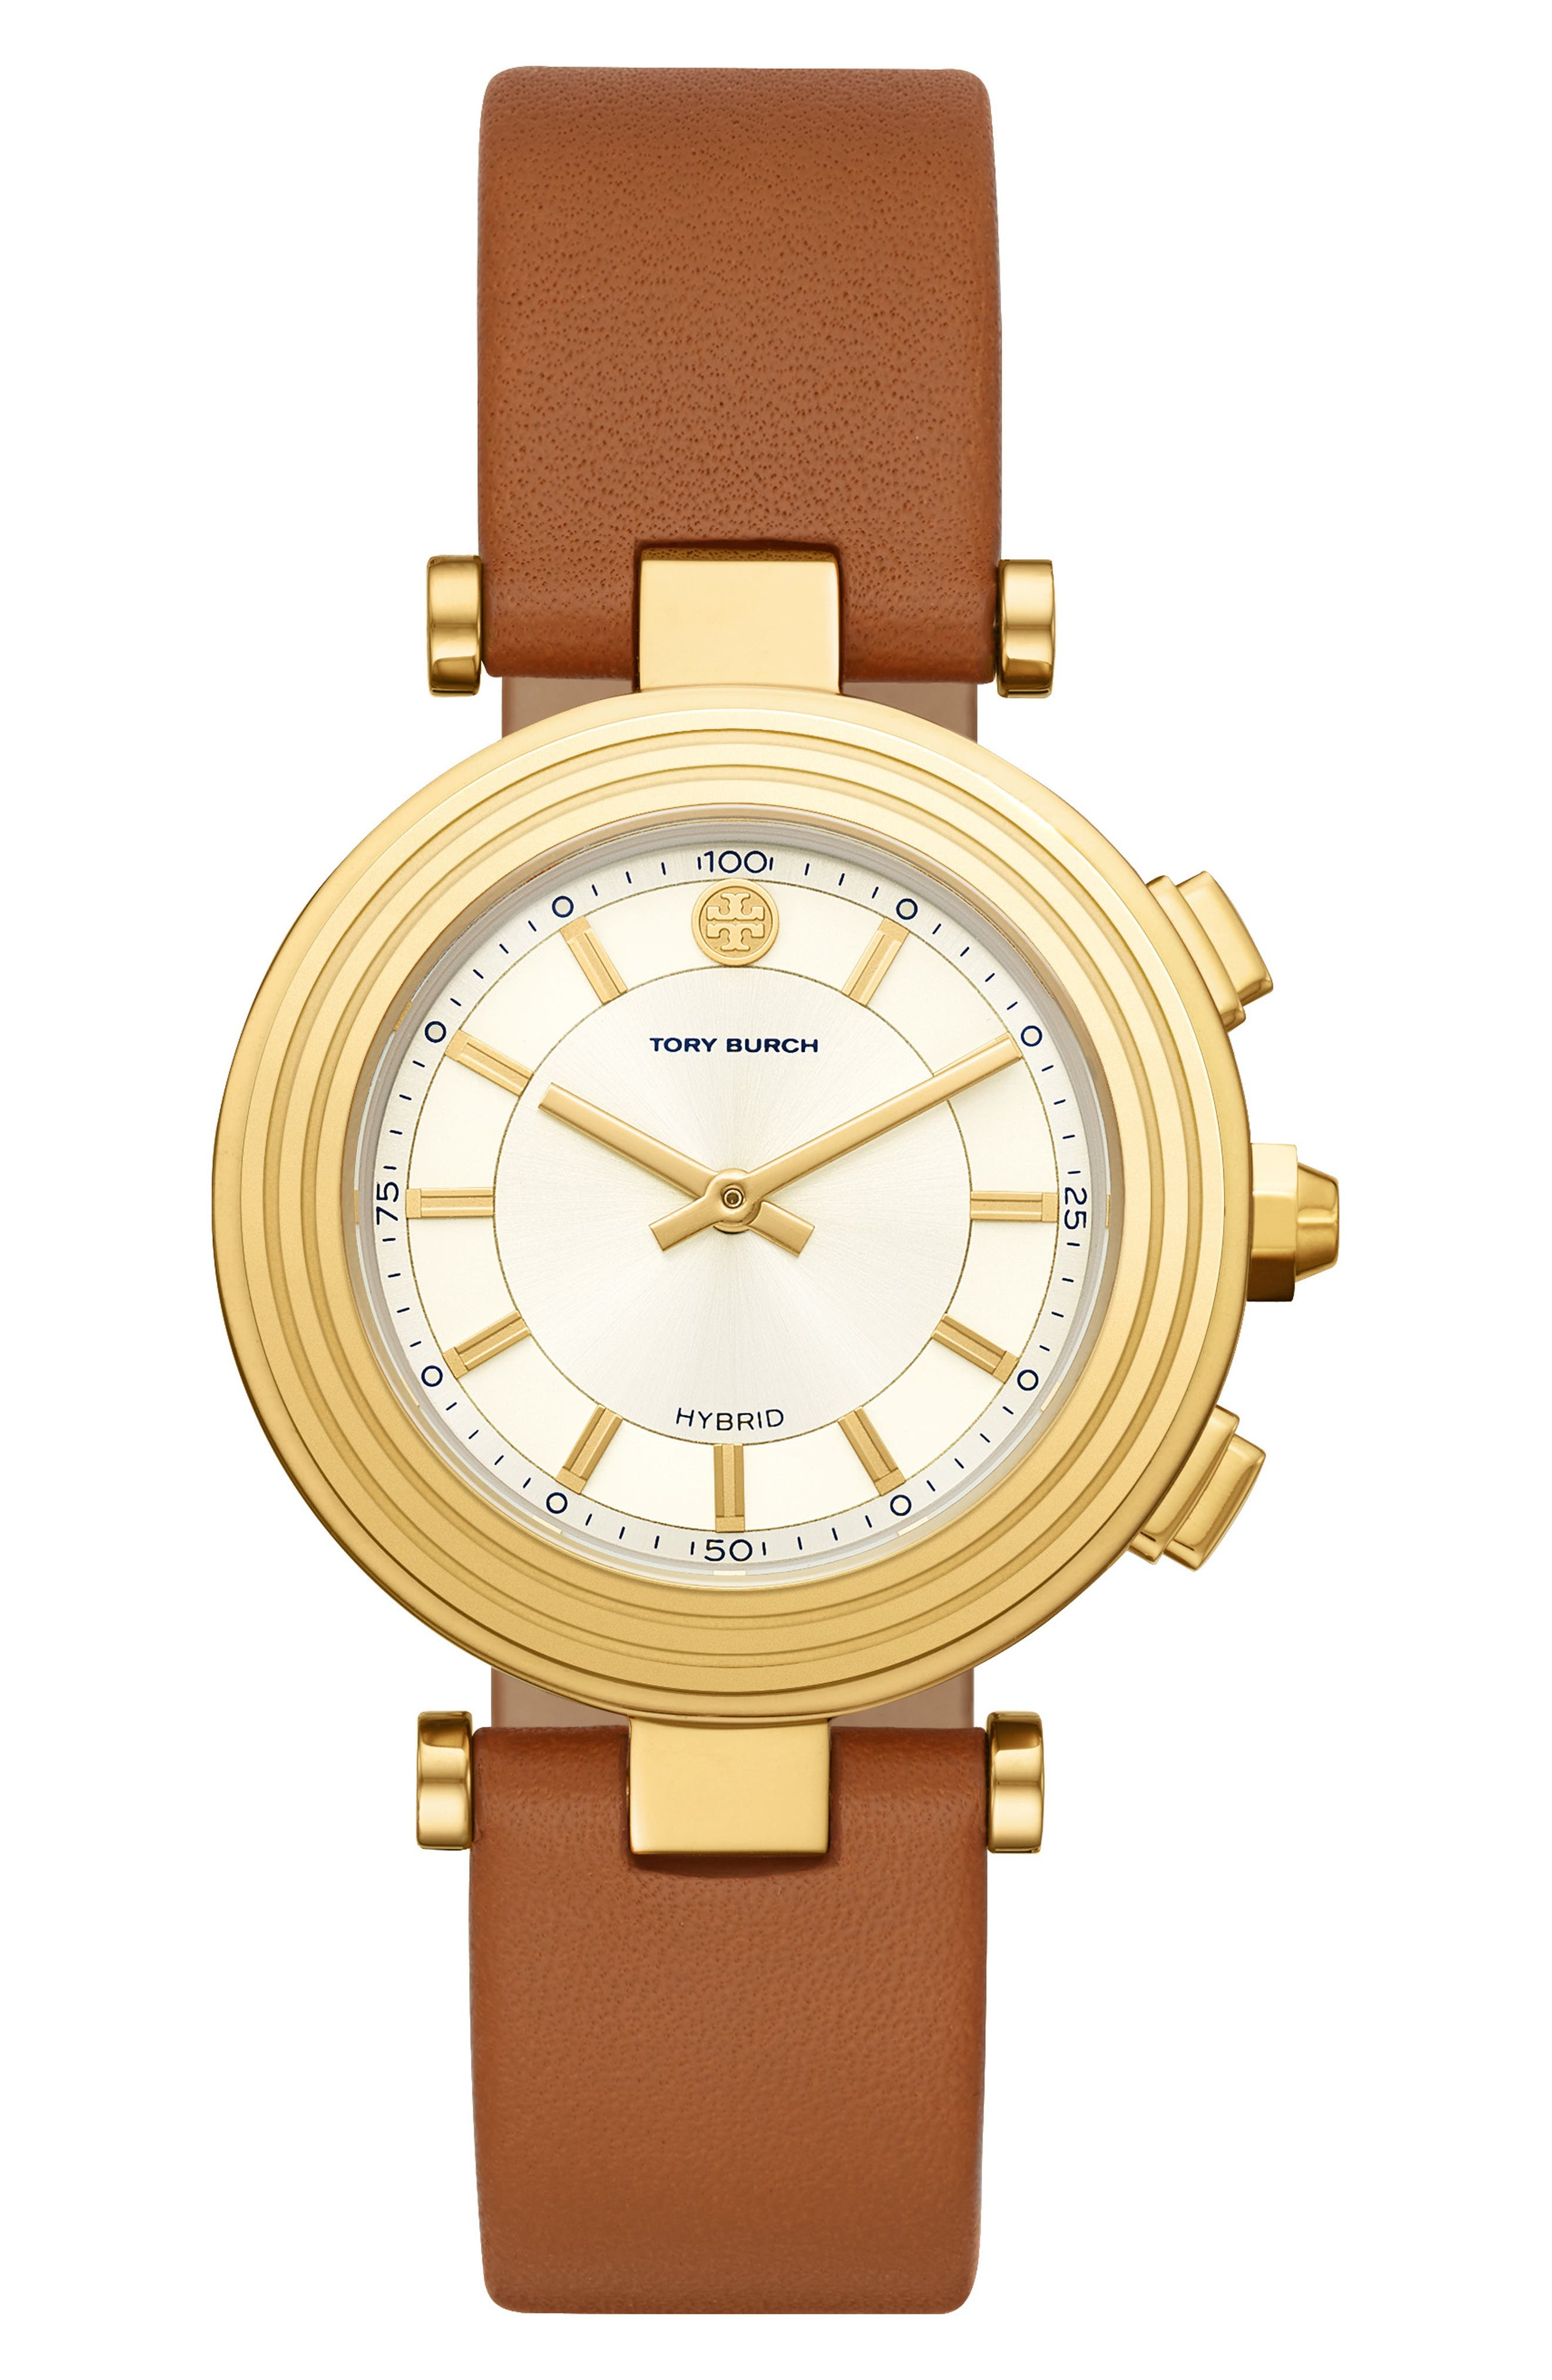 TORY BURCH ToryTrack Hybrid Smart Watch, 36mm x 46mm, Main, color, BROWN/ WHITE/ GOLD